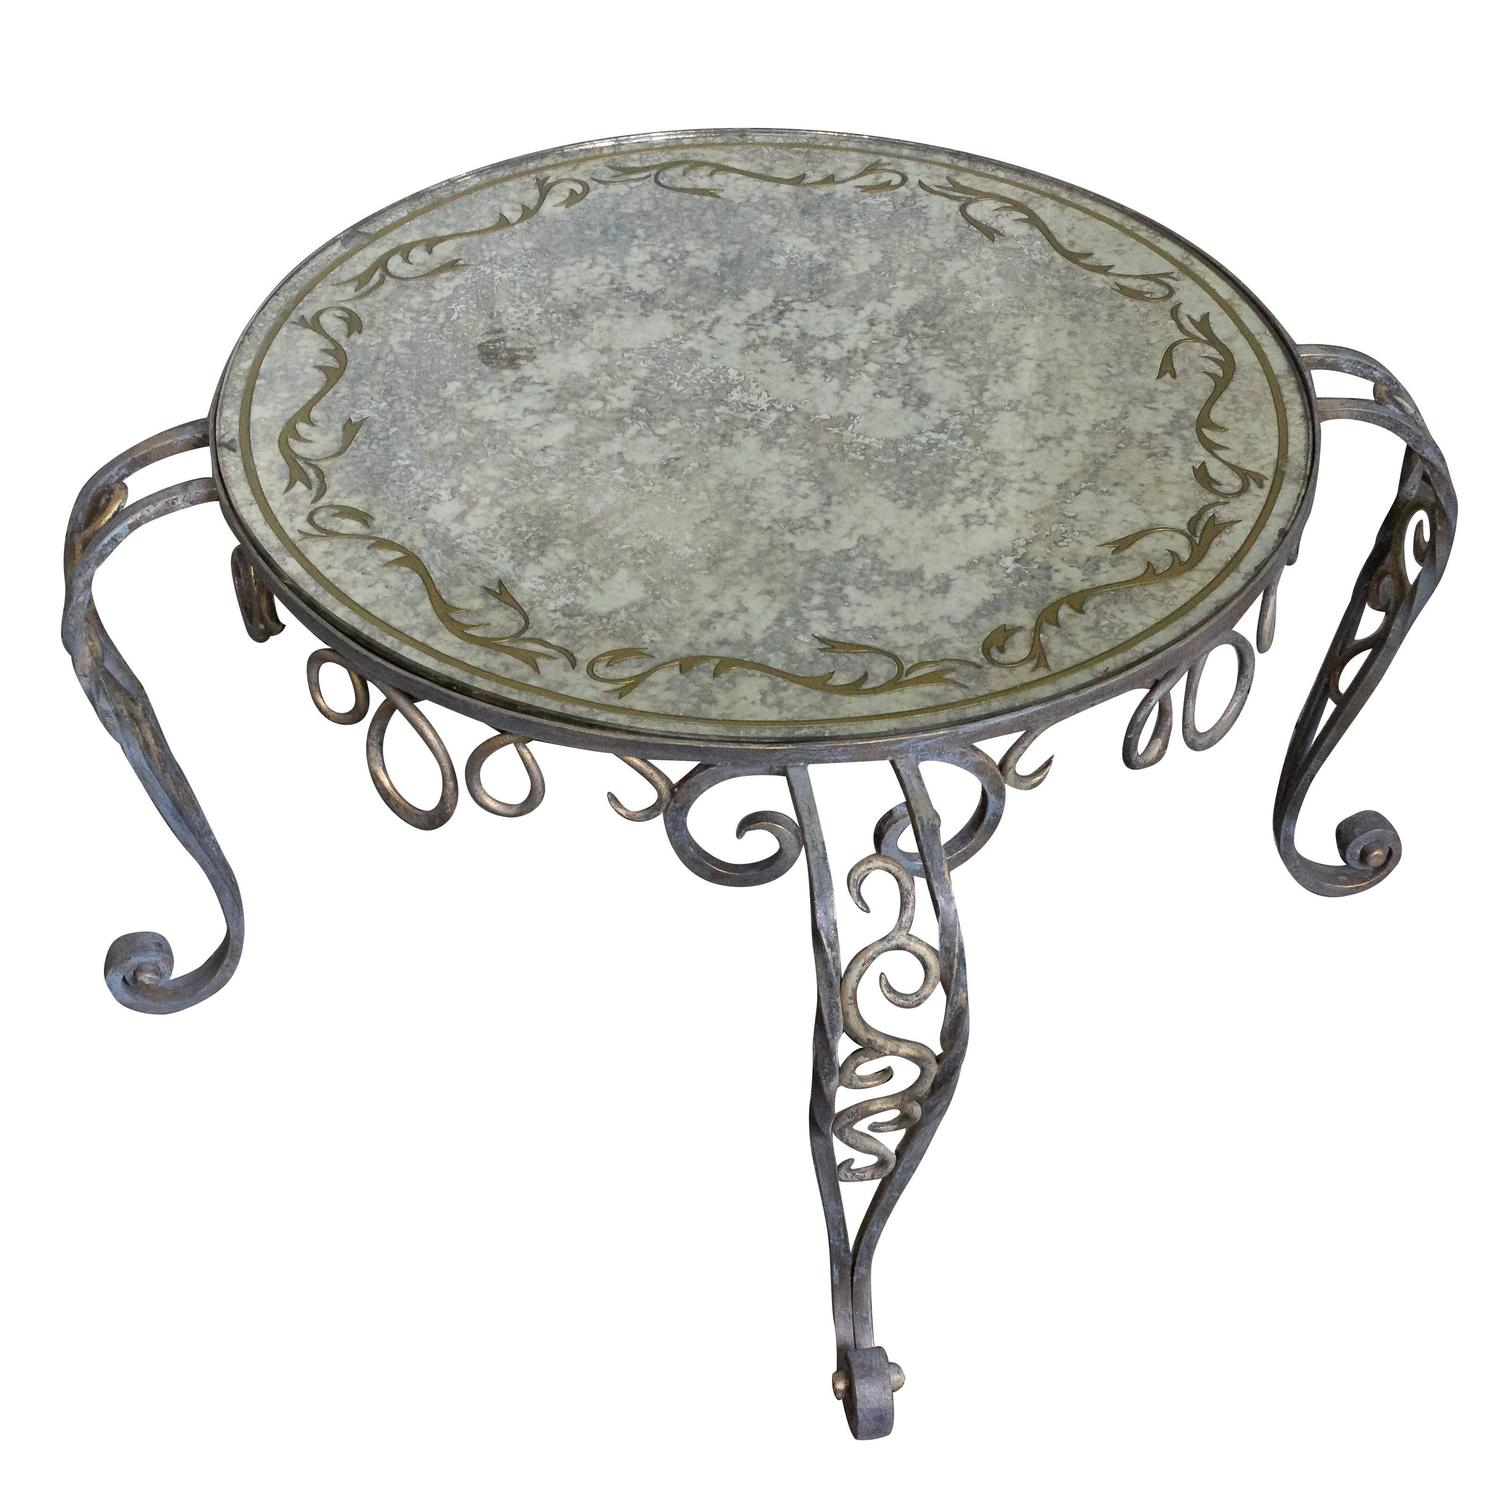 Painted Iron Coffee Table With Reverse Painted Glass For Sale At 1stdibs